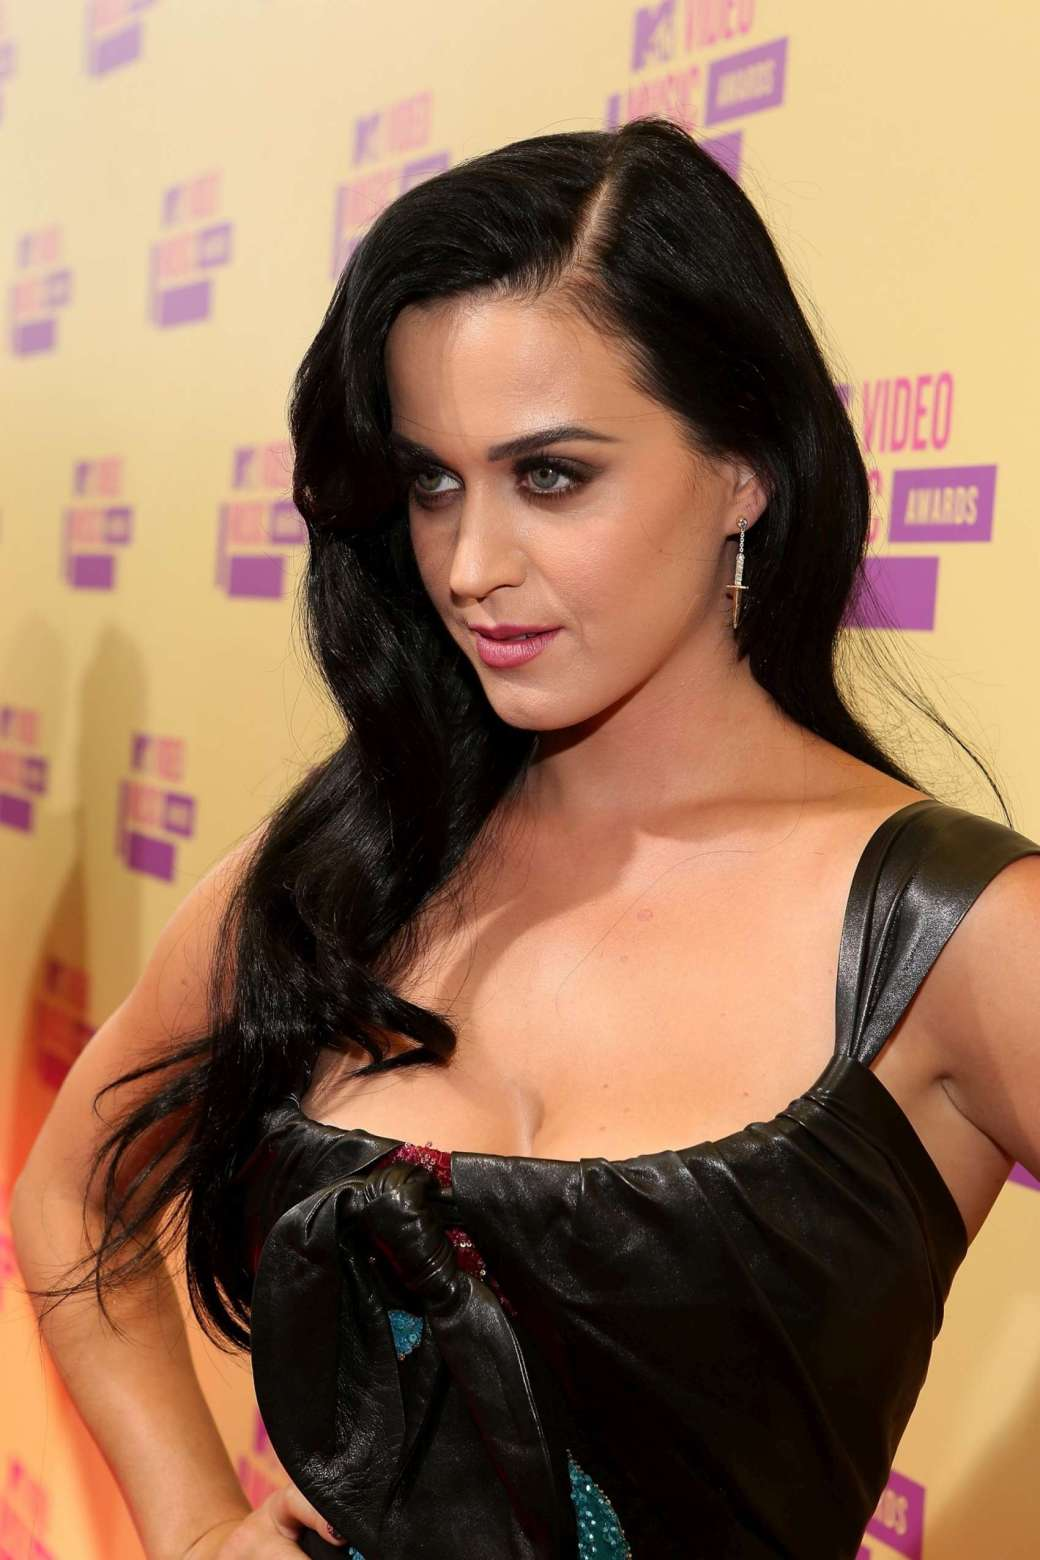 Katy Perry  hot pic.jpeg I2